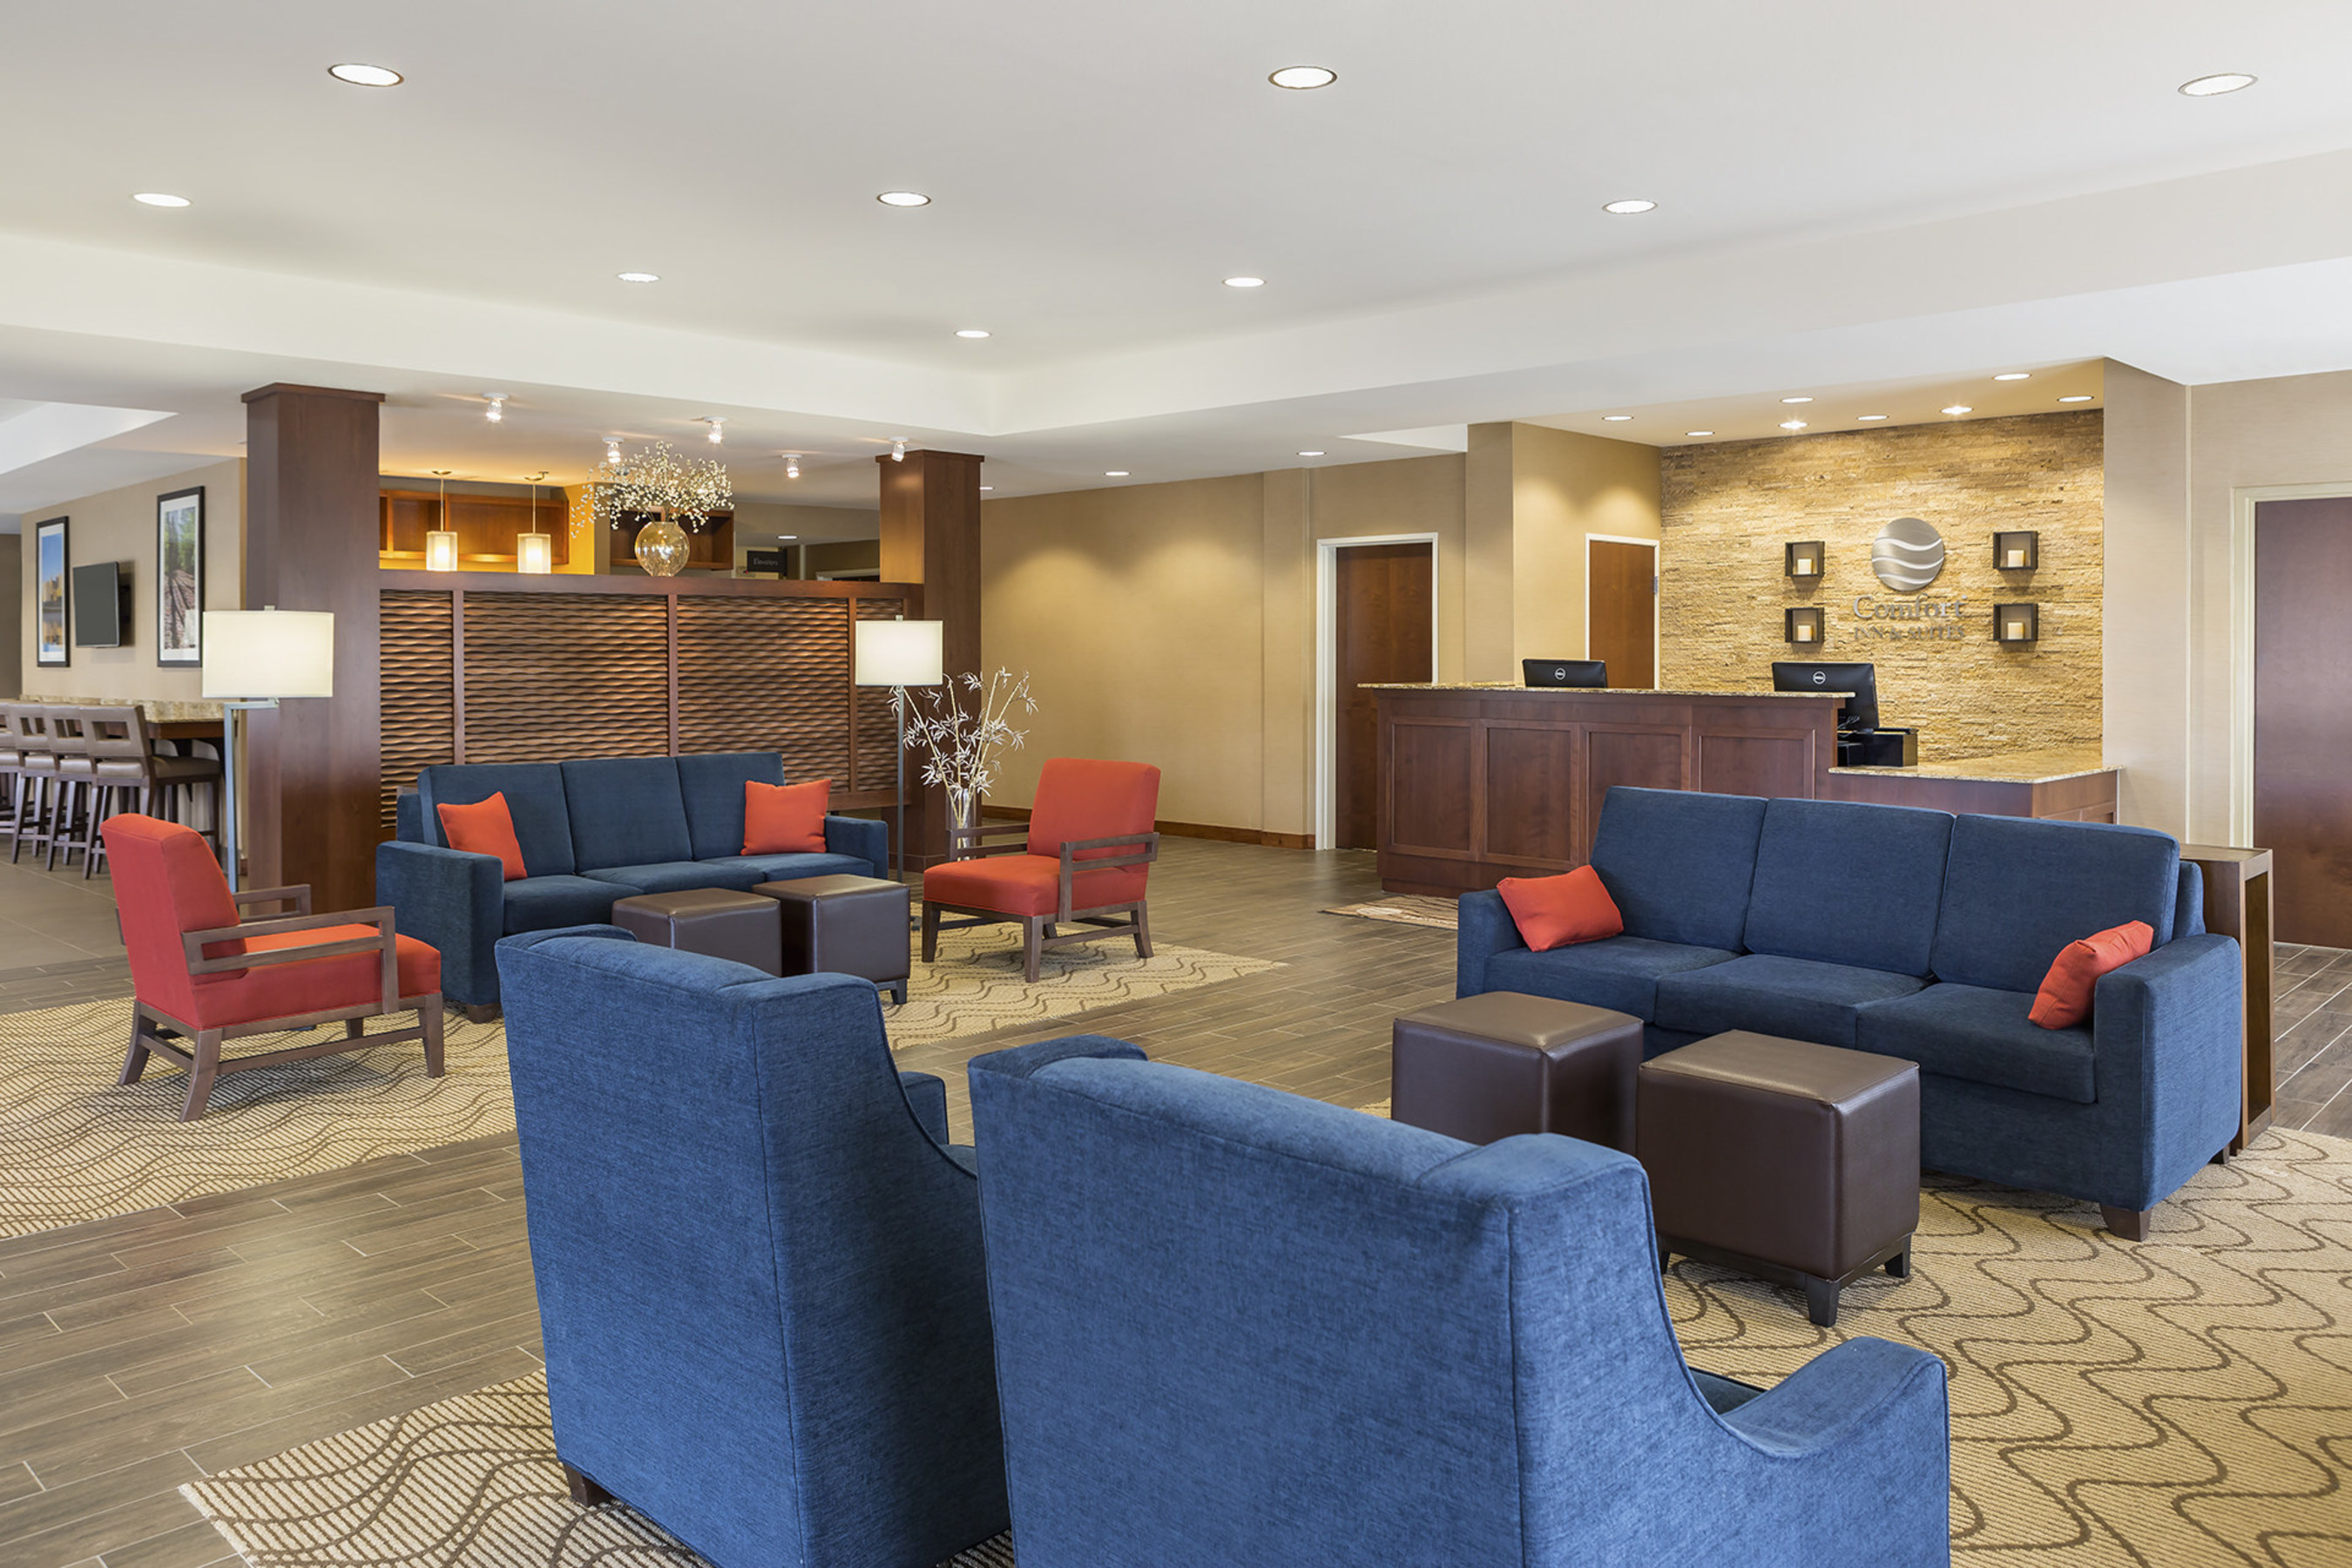 Choice Hotels Comfort Inn Lobby